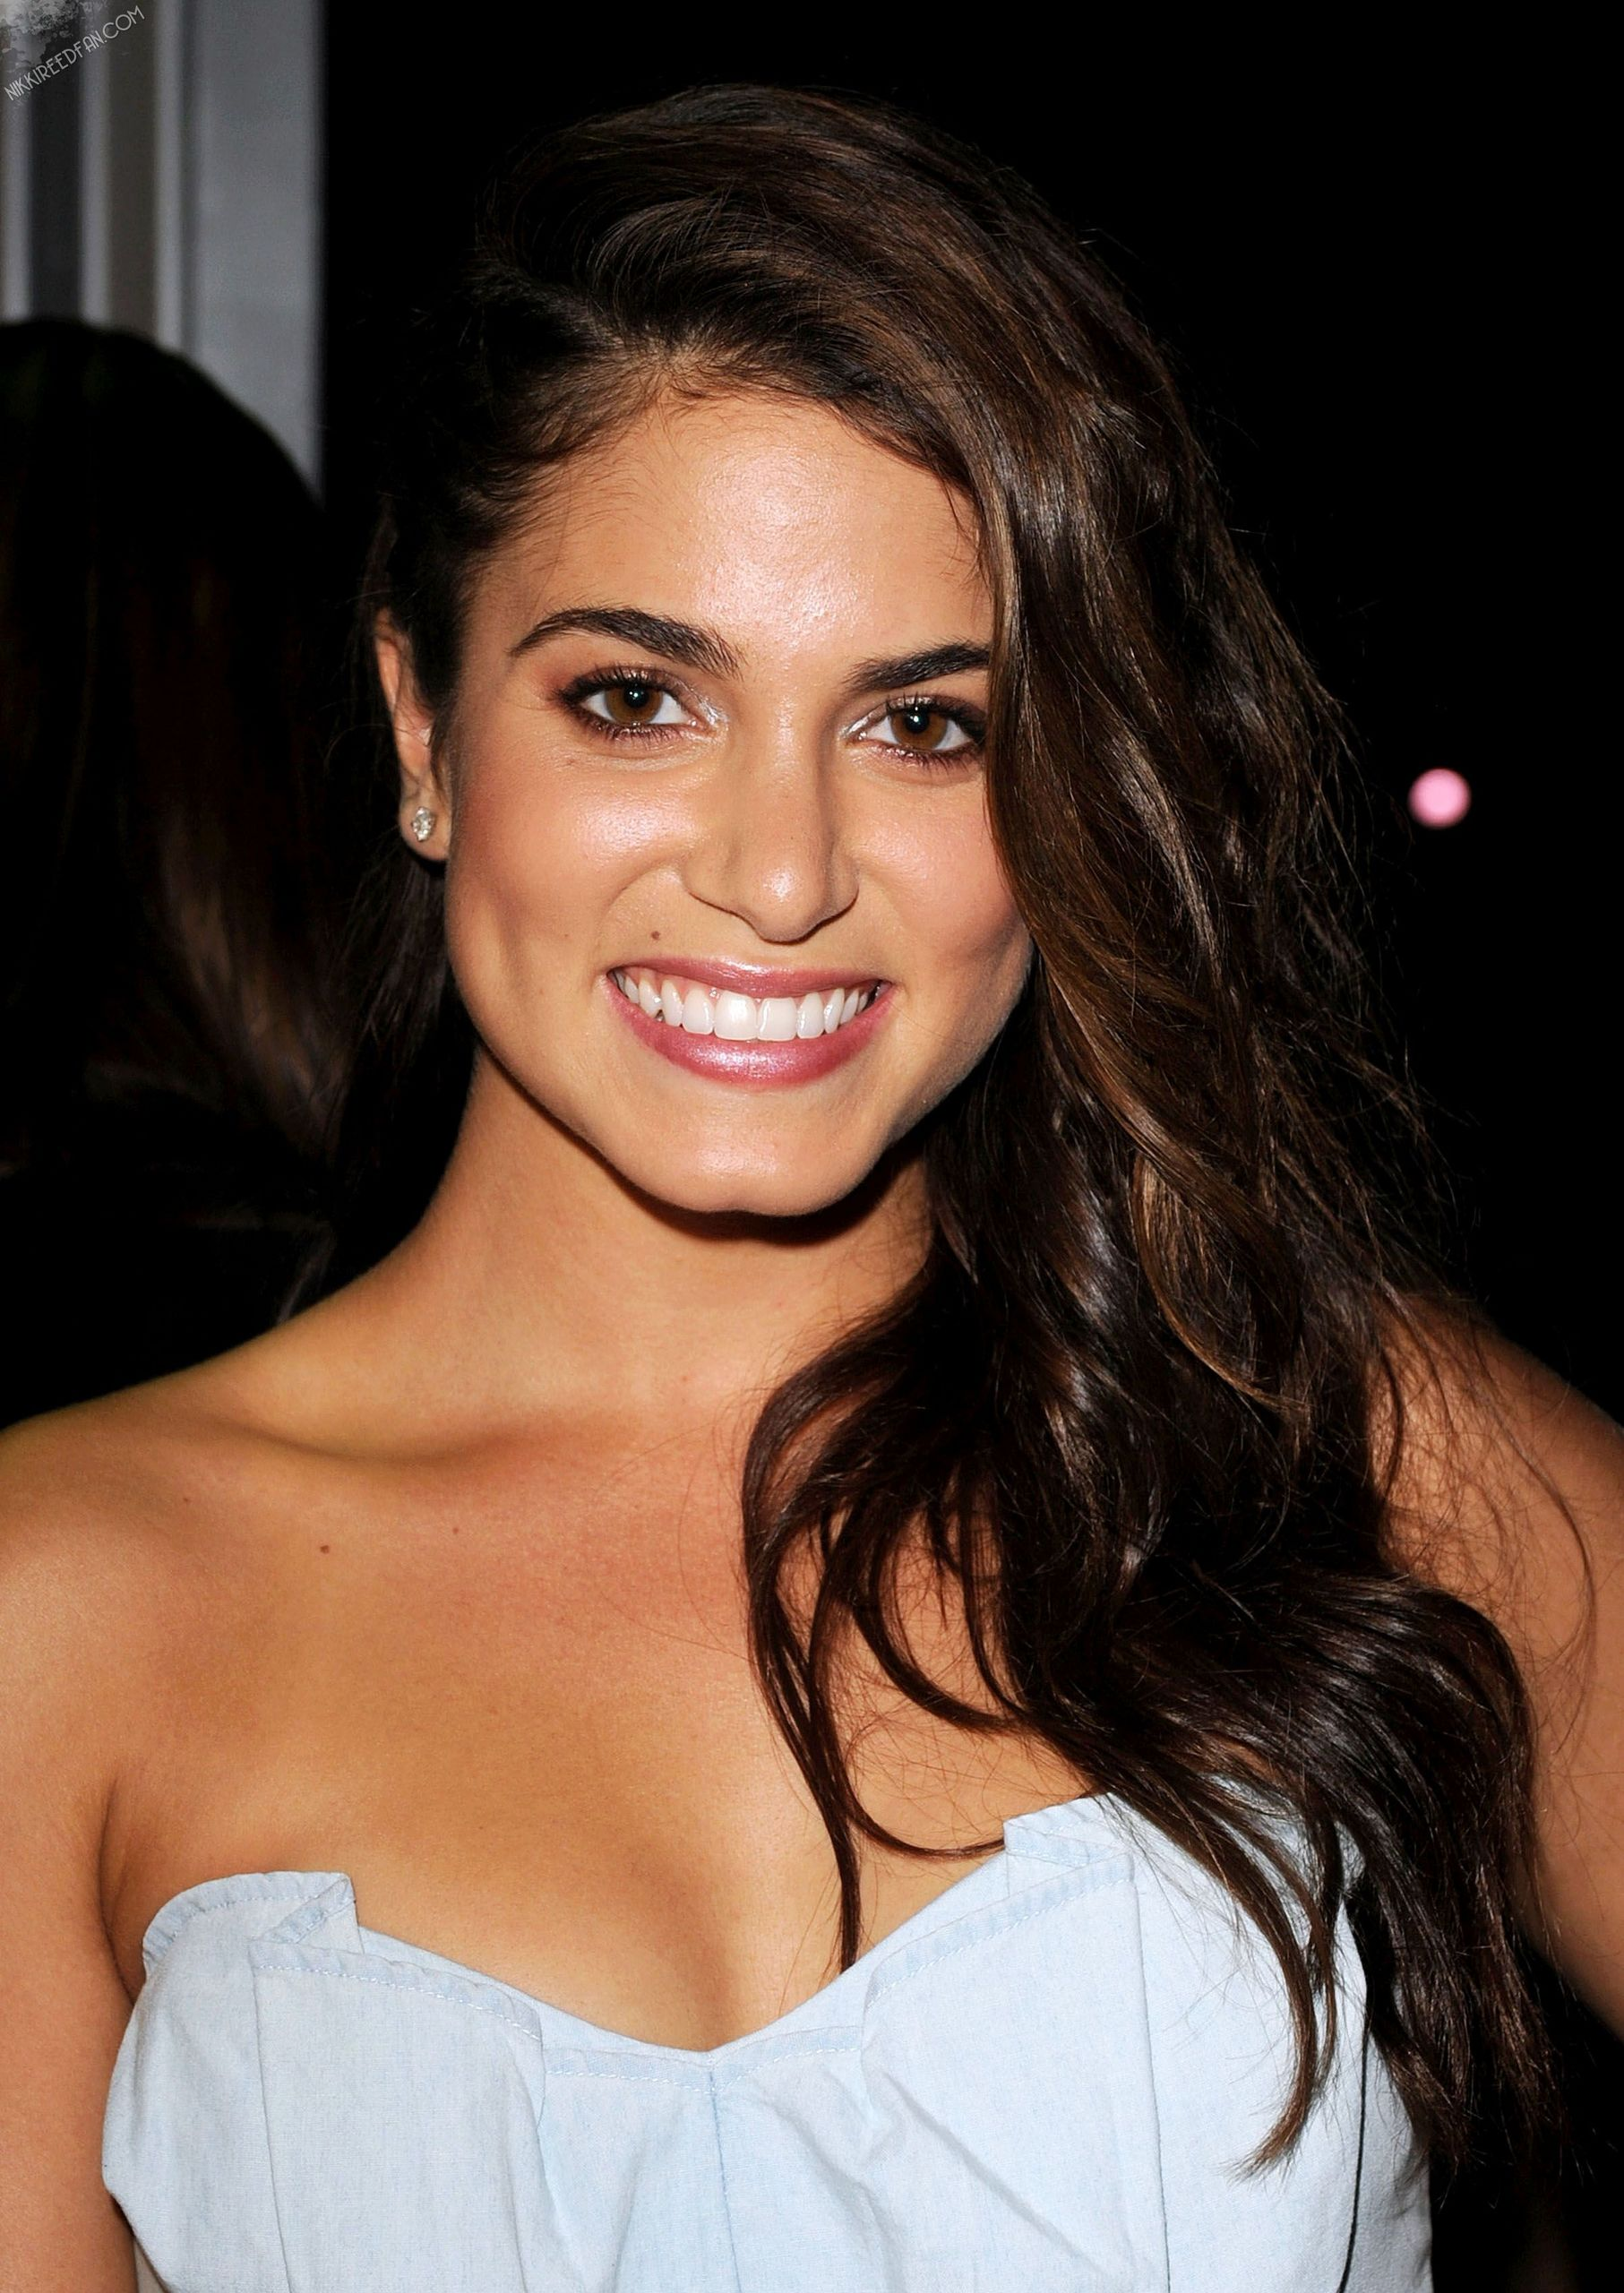 http://images1.wikia.nocookie.net/__cb20130318203447/twilightsaga/pl/images/d/d8/Nikki_Reed.jpg